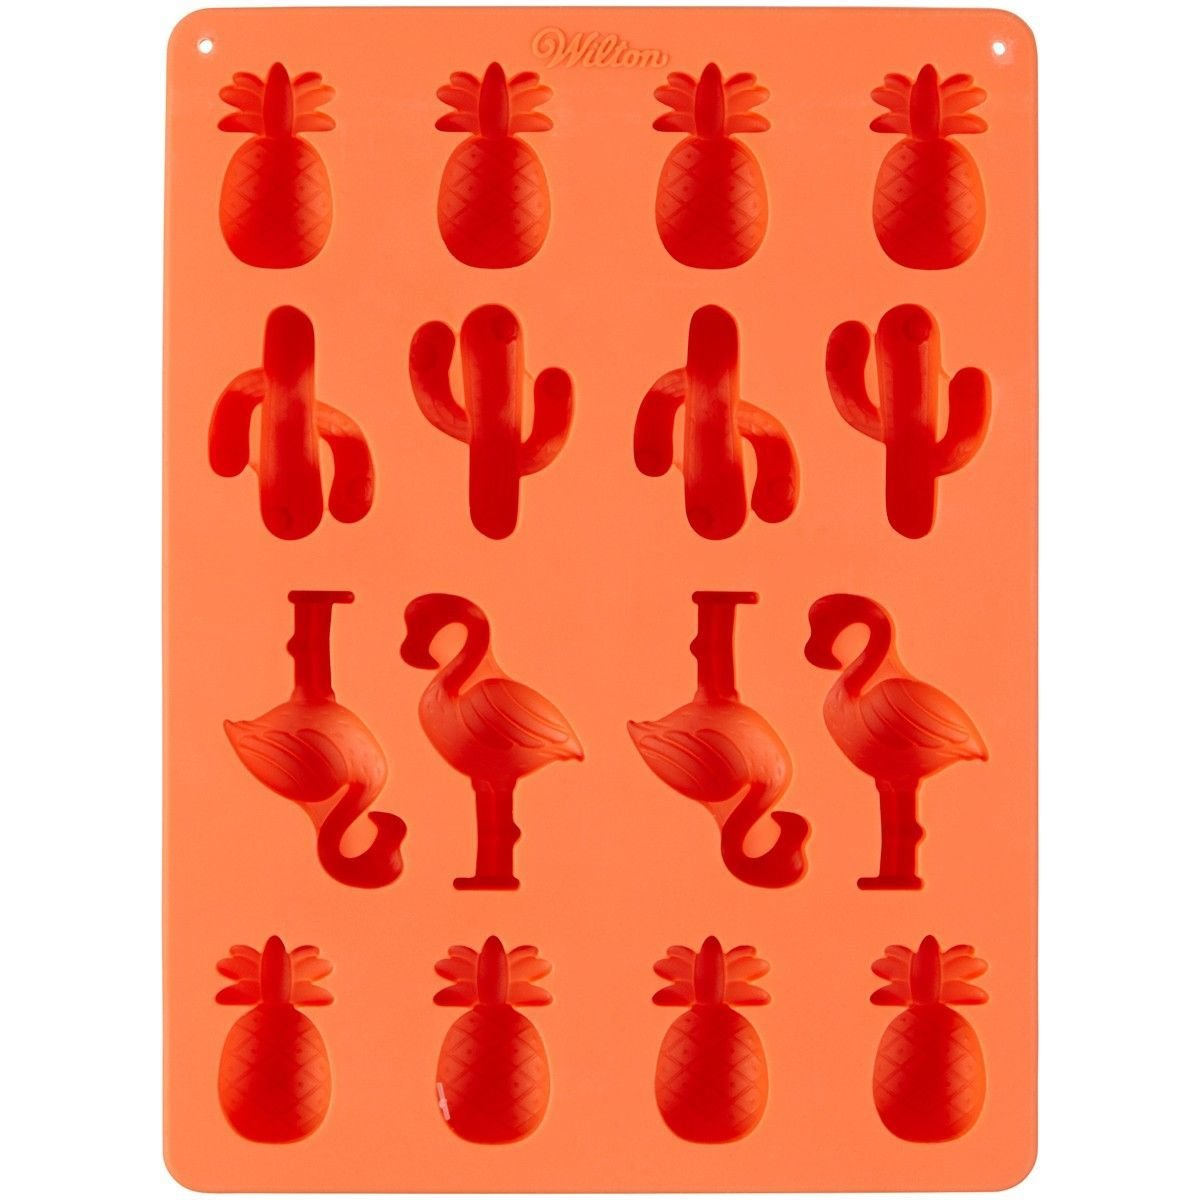 Wilton Silicone Candy Mould -PINEAPPLE, CACTI, FLAMINGO -Καλούπι σιλικόνης ανανά, κάκτο, φλαμίνγκο